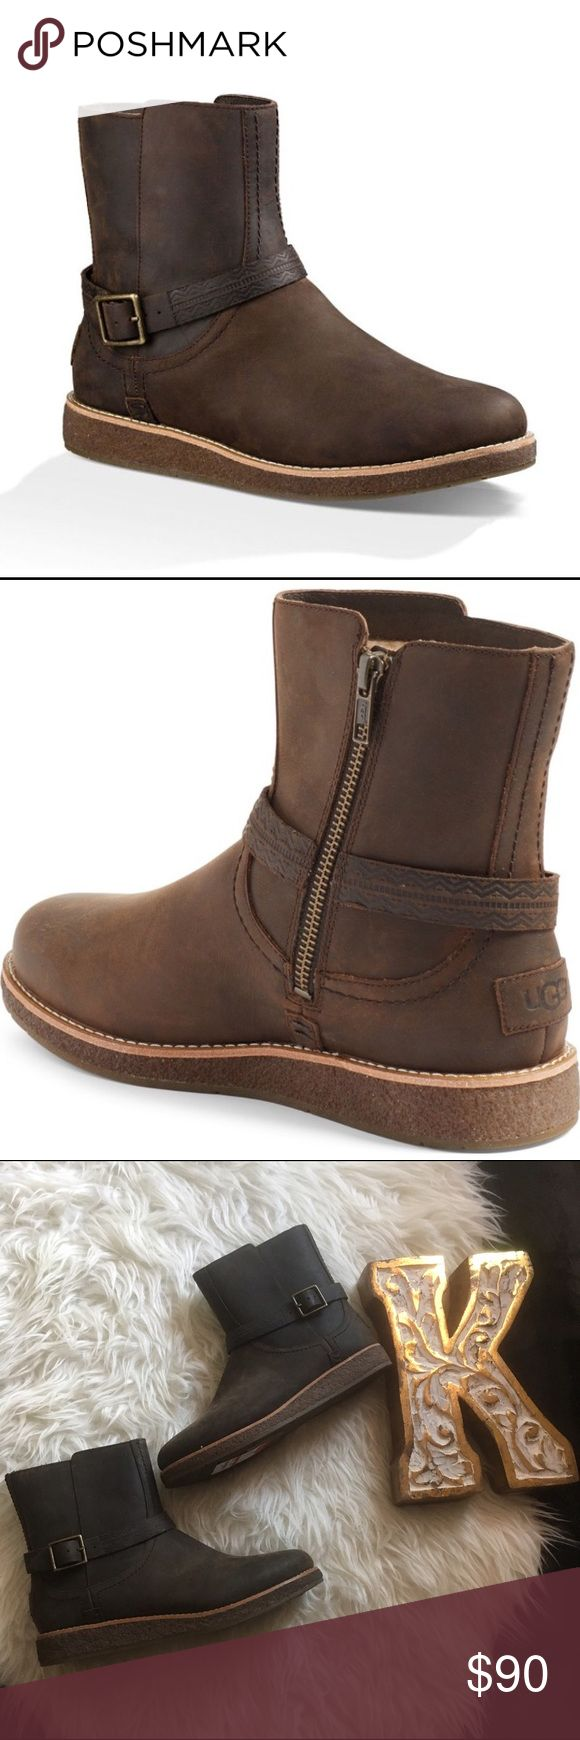 NWT Ugg 'Camren' short brown buckle boot Brand new, classic ugg with a twist, leather outside and sheep lining, buckled with a tribal stamp on belt, super cute short brown boot! UGG Shoes